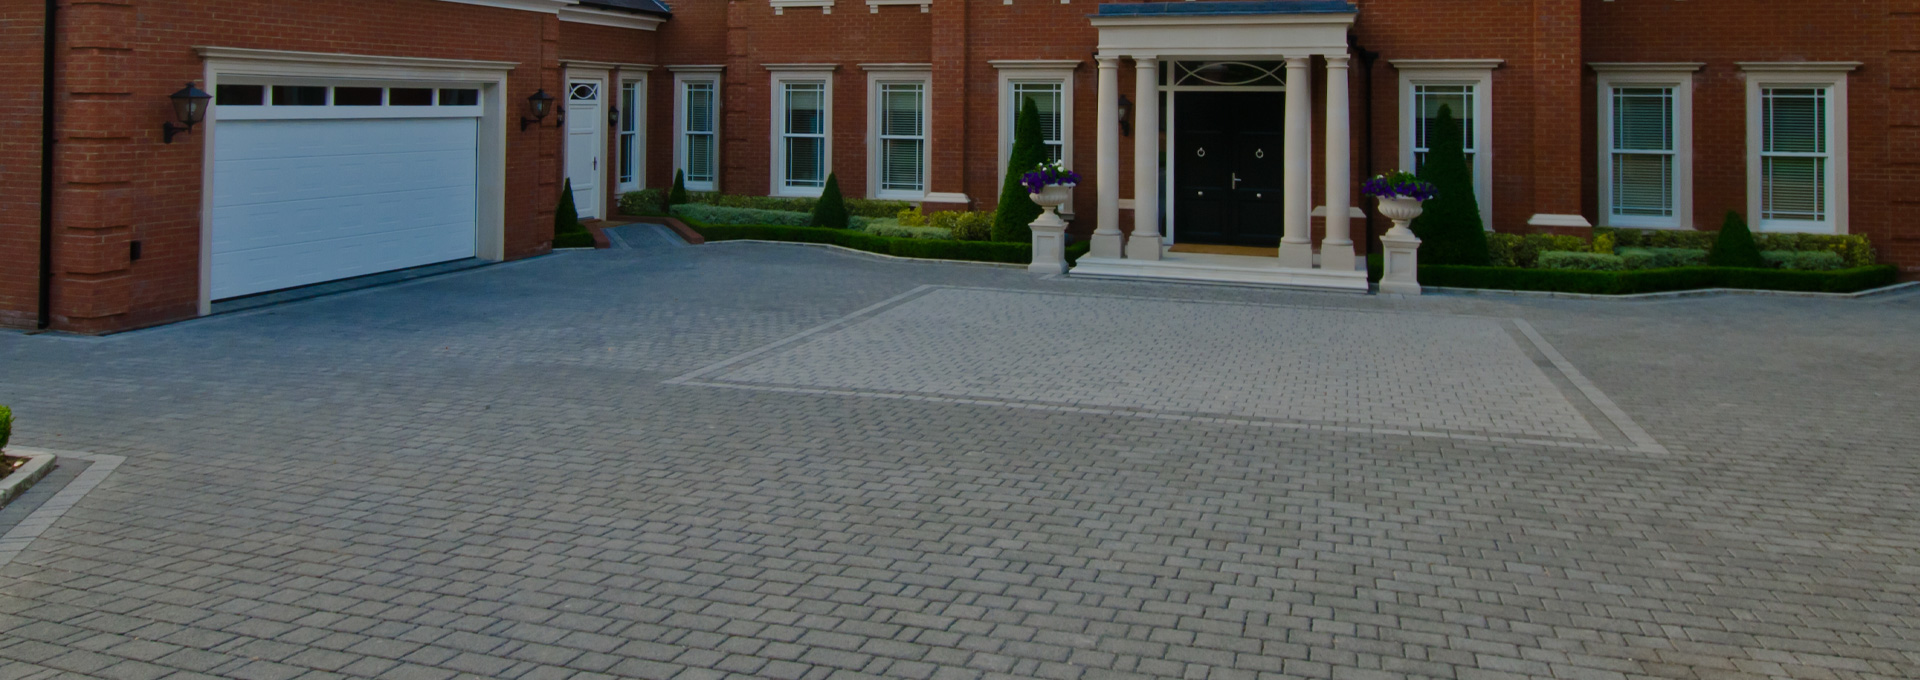 Large driveway area fitted by Outback Landscapes specialists.